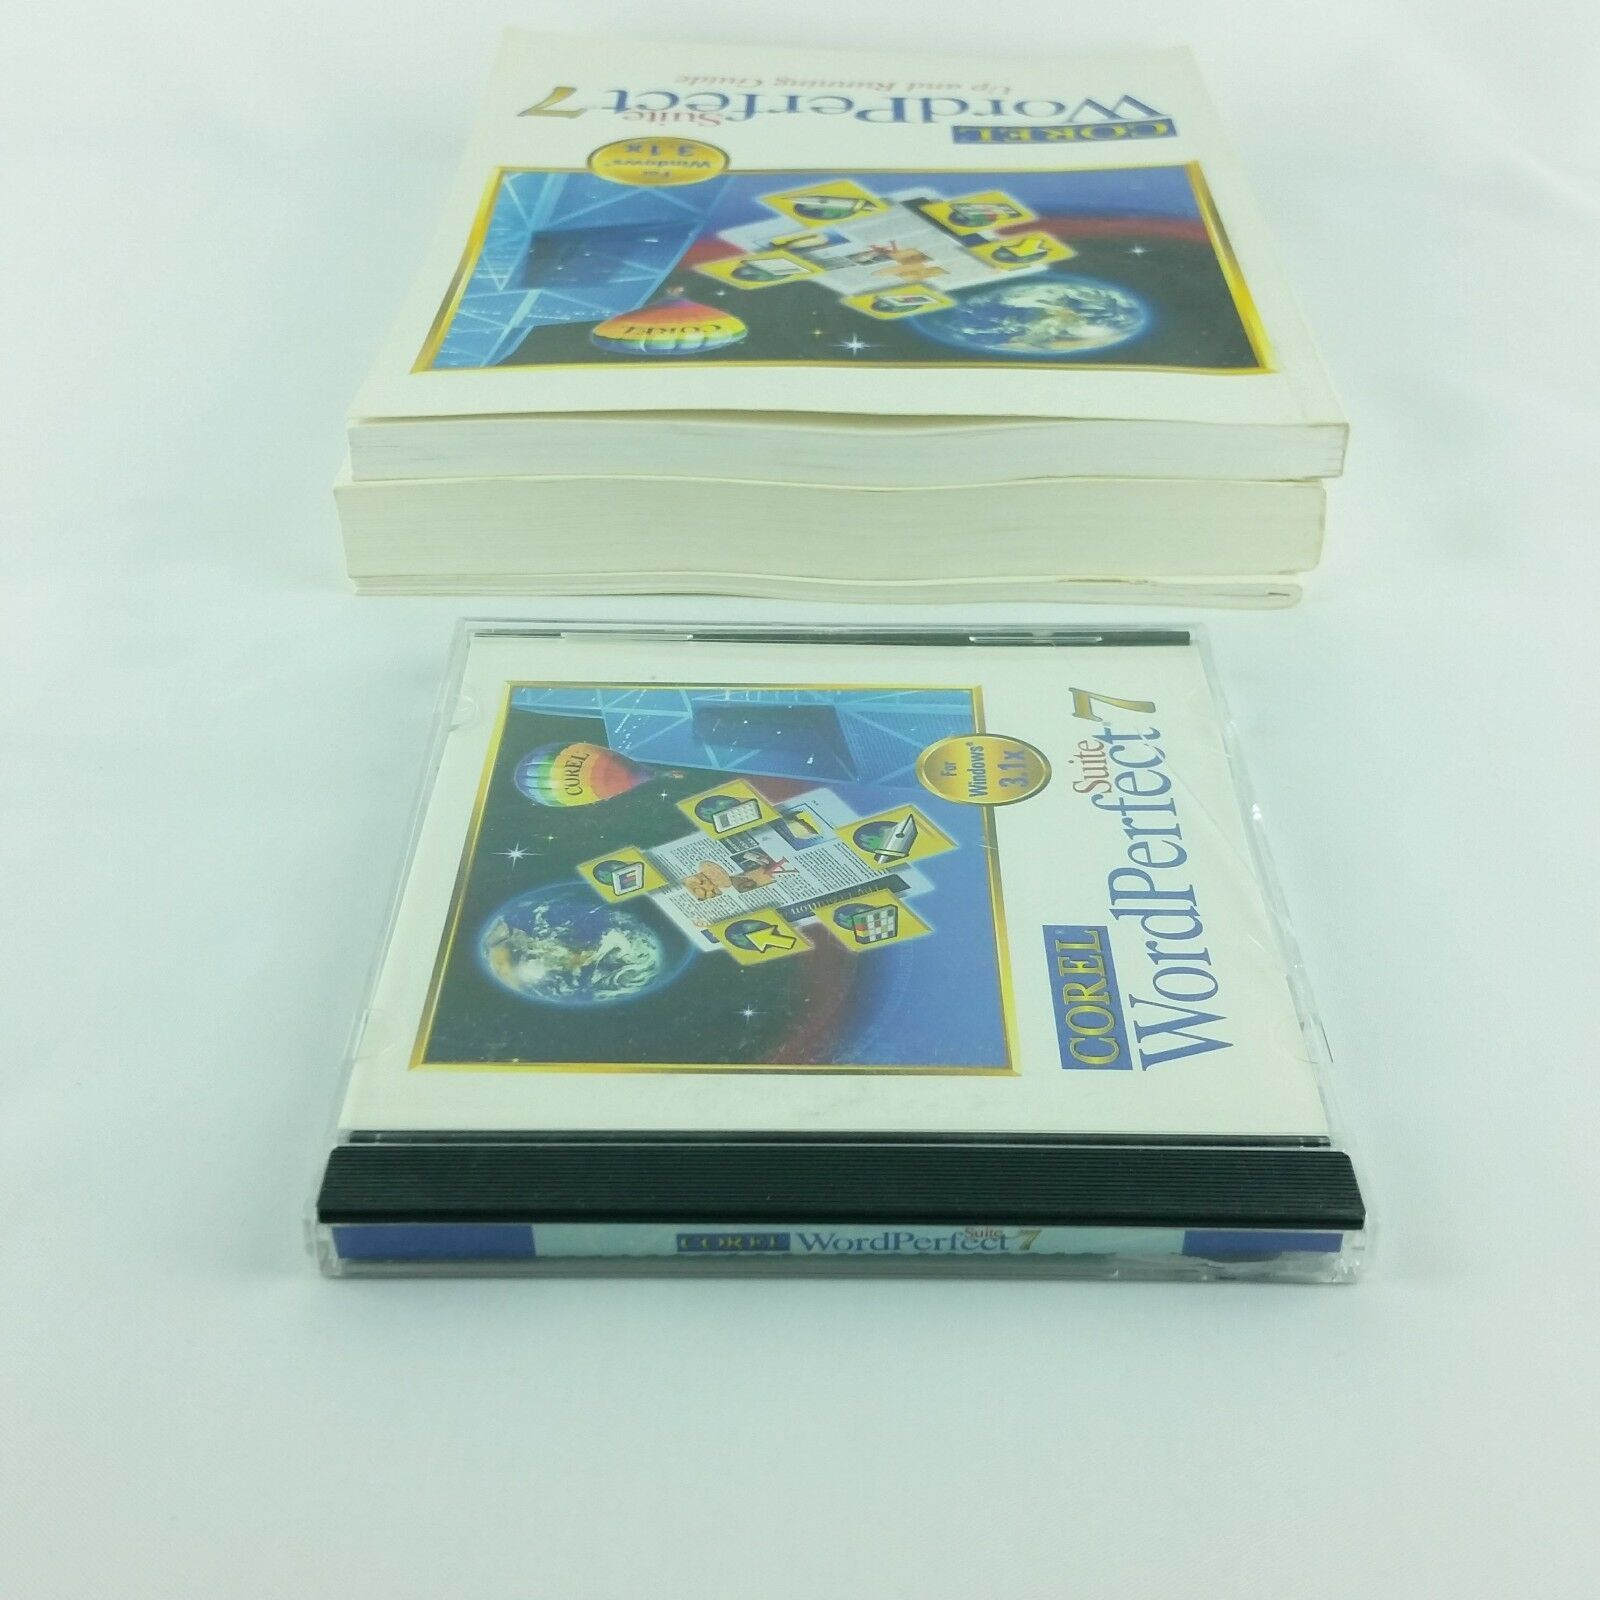 Corel WordPerfect 7 Suite Windows 3.1x  Books and CD Vintage Quattro Pro Paradox image 6